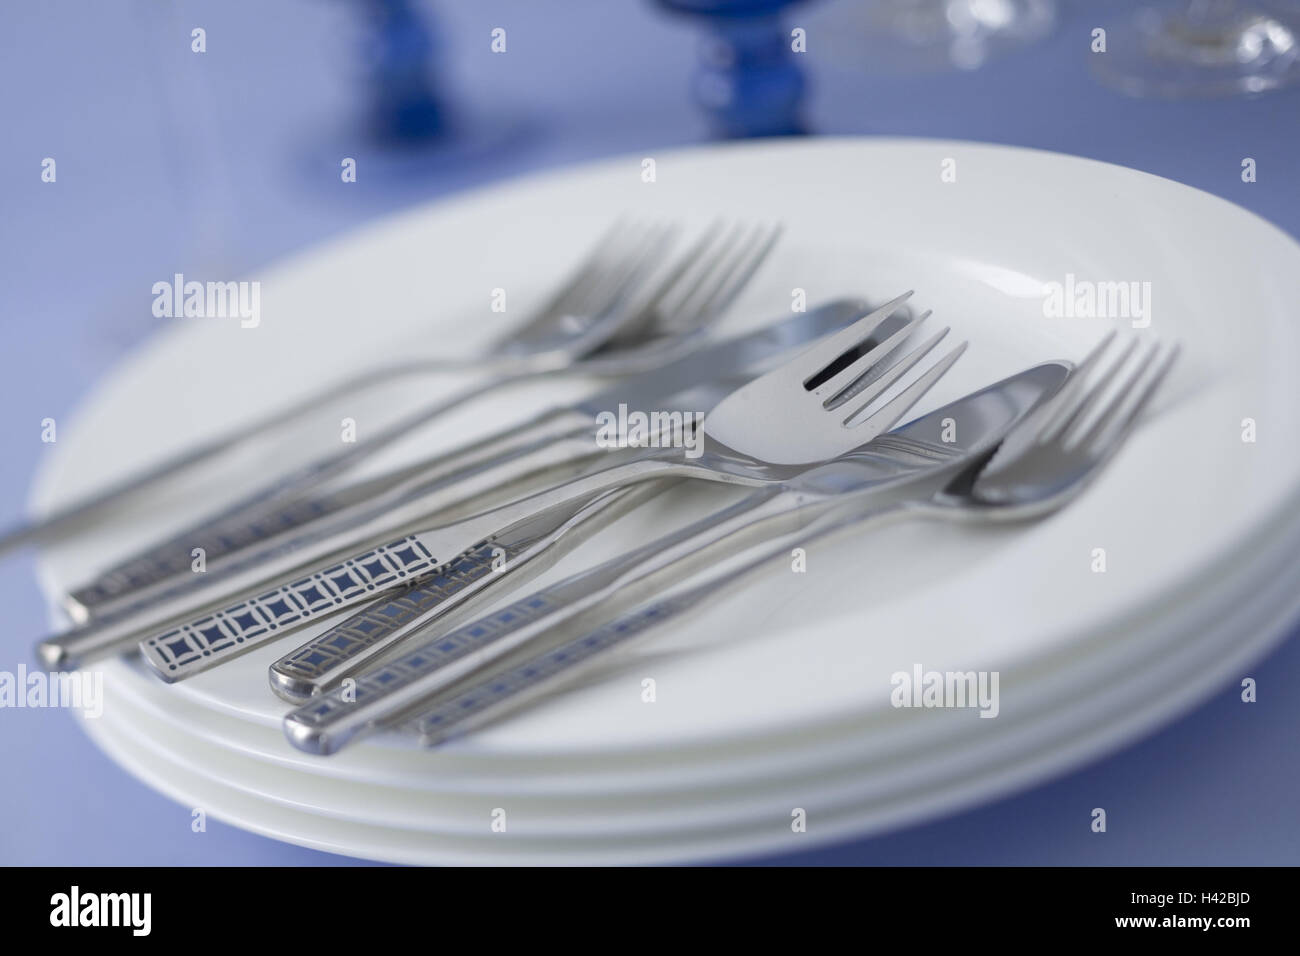 Plate, stacked, flatware, - Stock Image